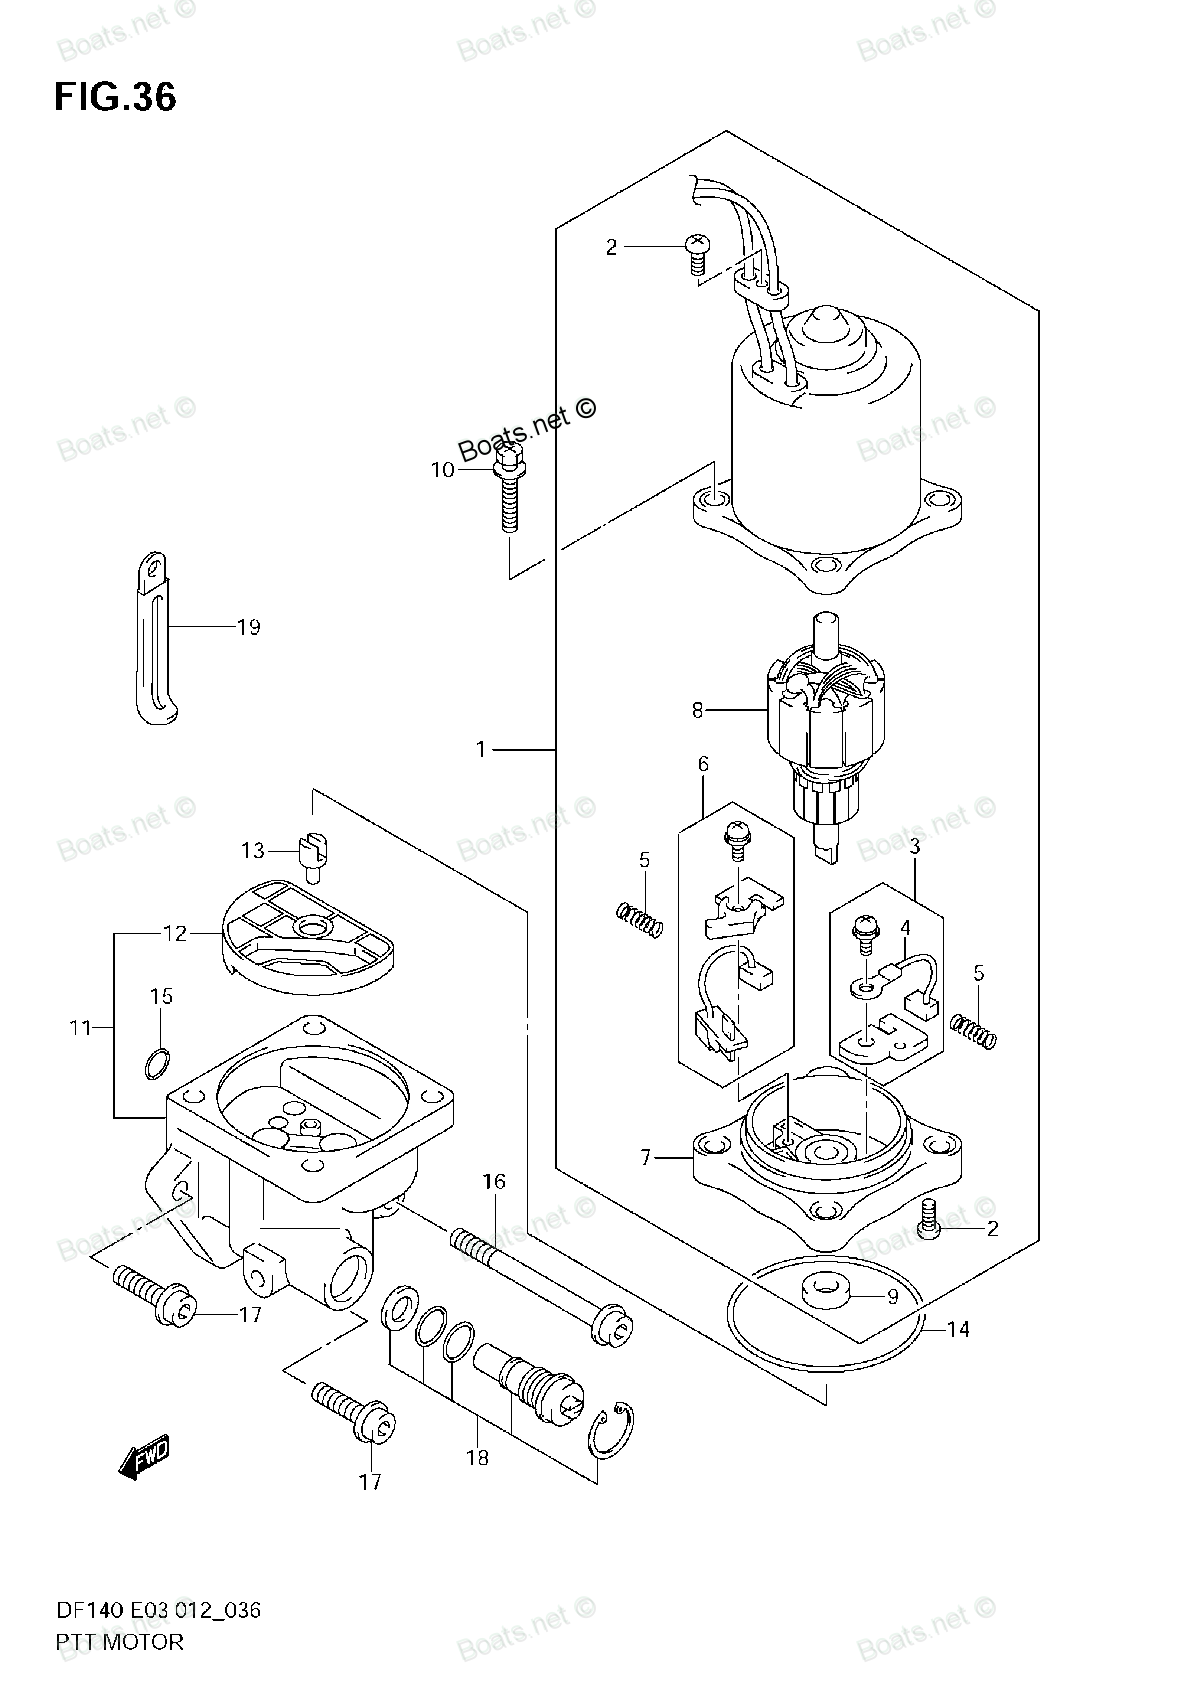 suzuki df 140 outboard motor parts diagram  u2022 wiring